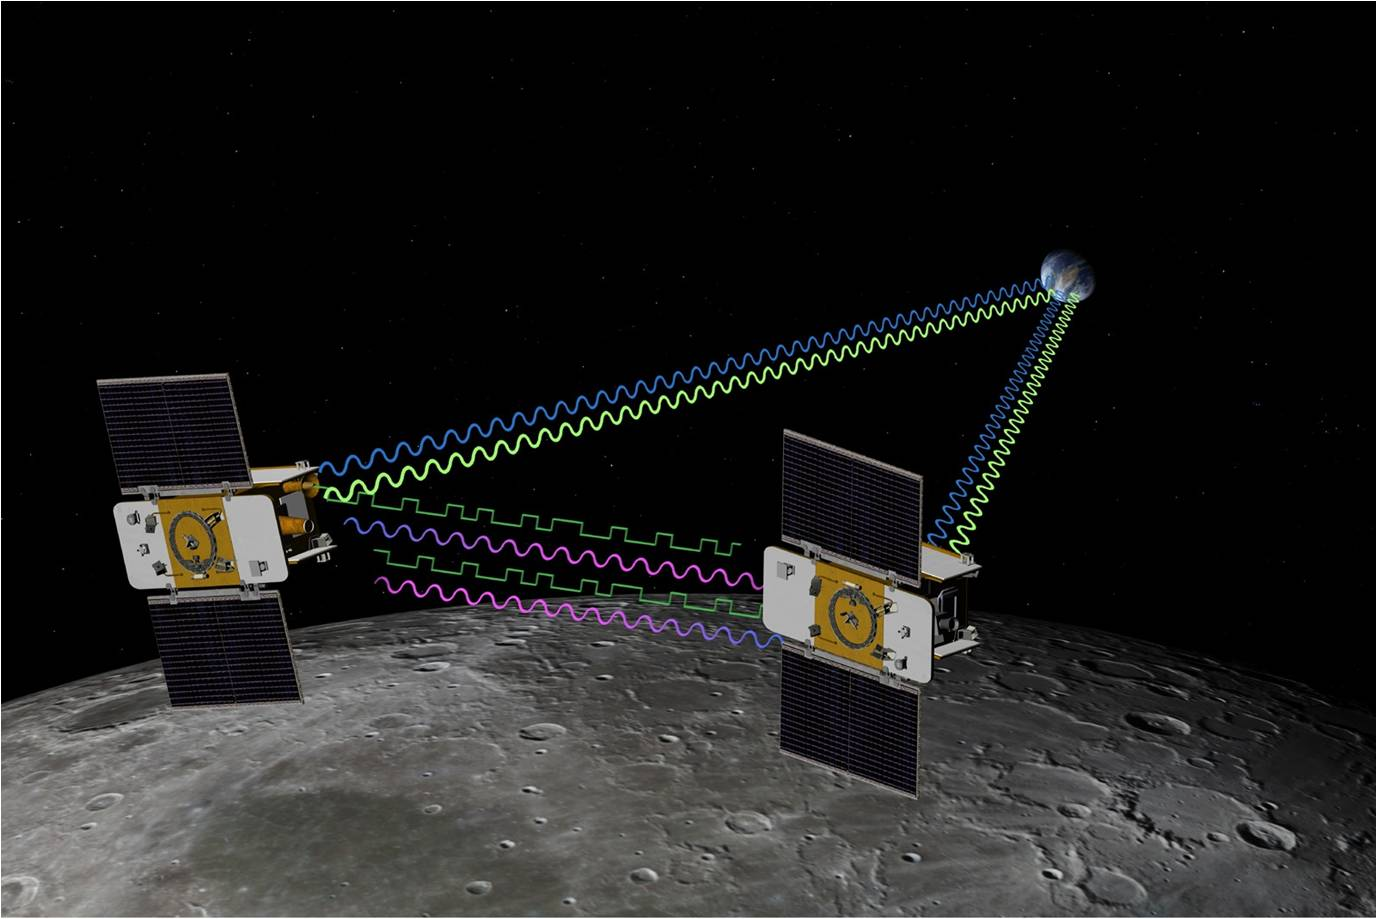 GRAIL spacecraft in orbit of the Moon